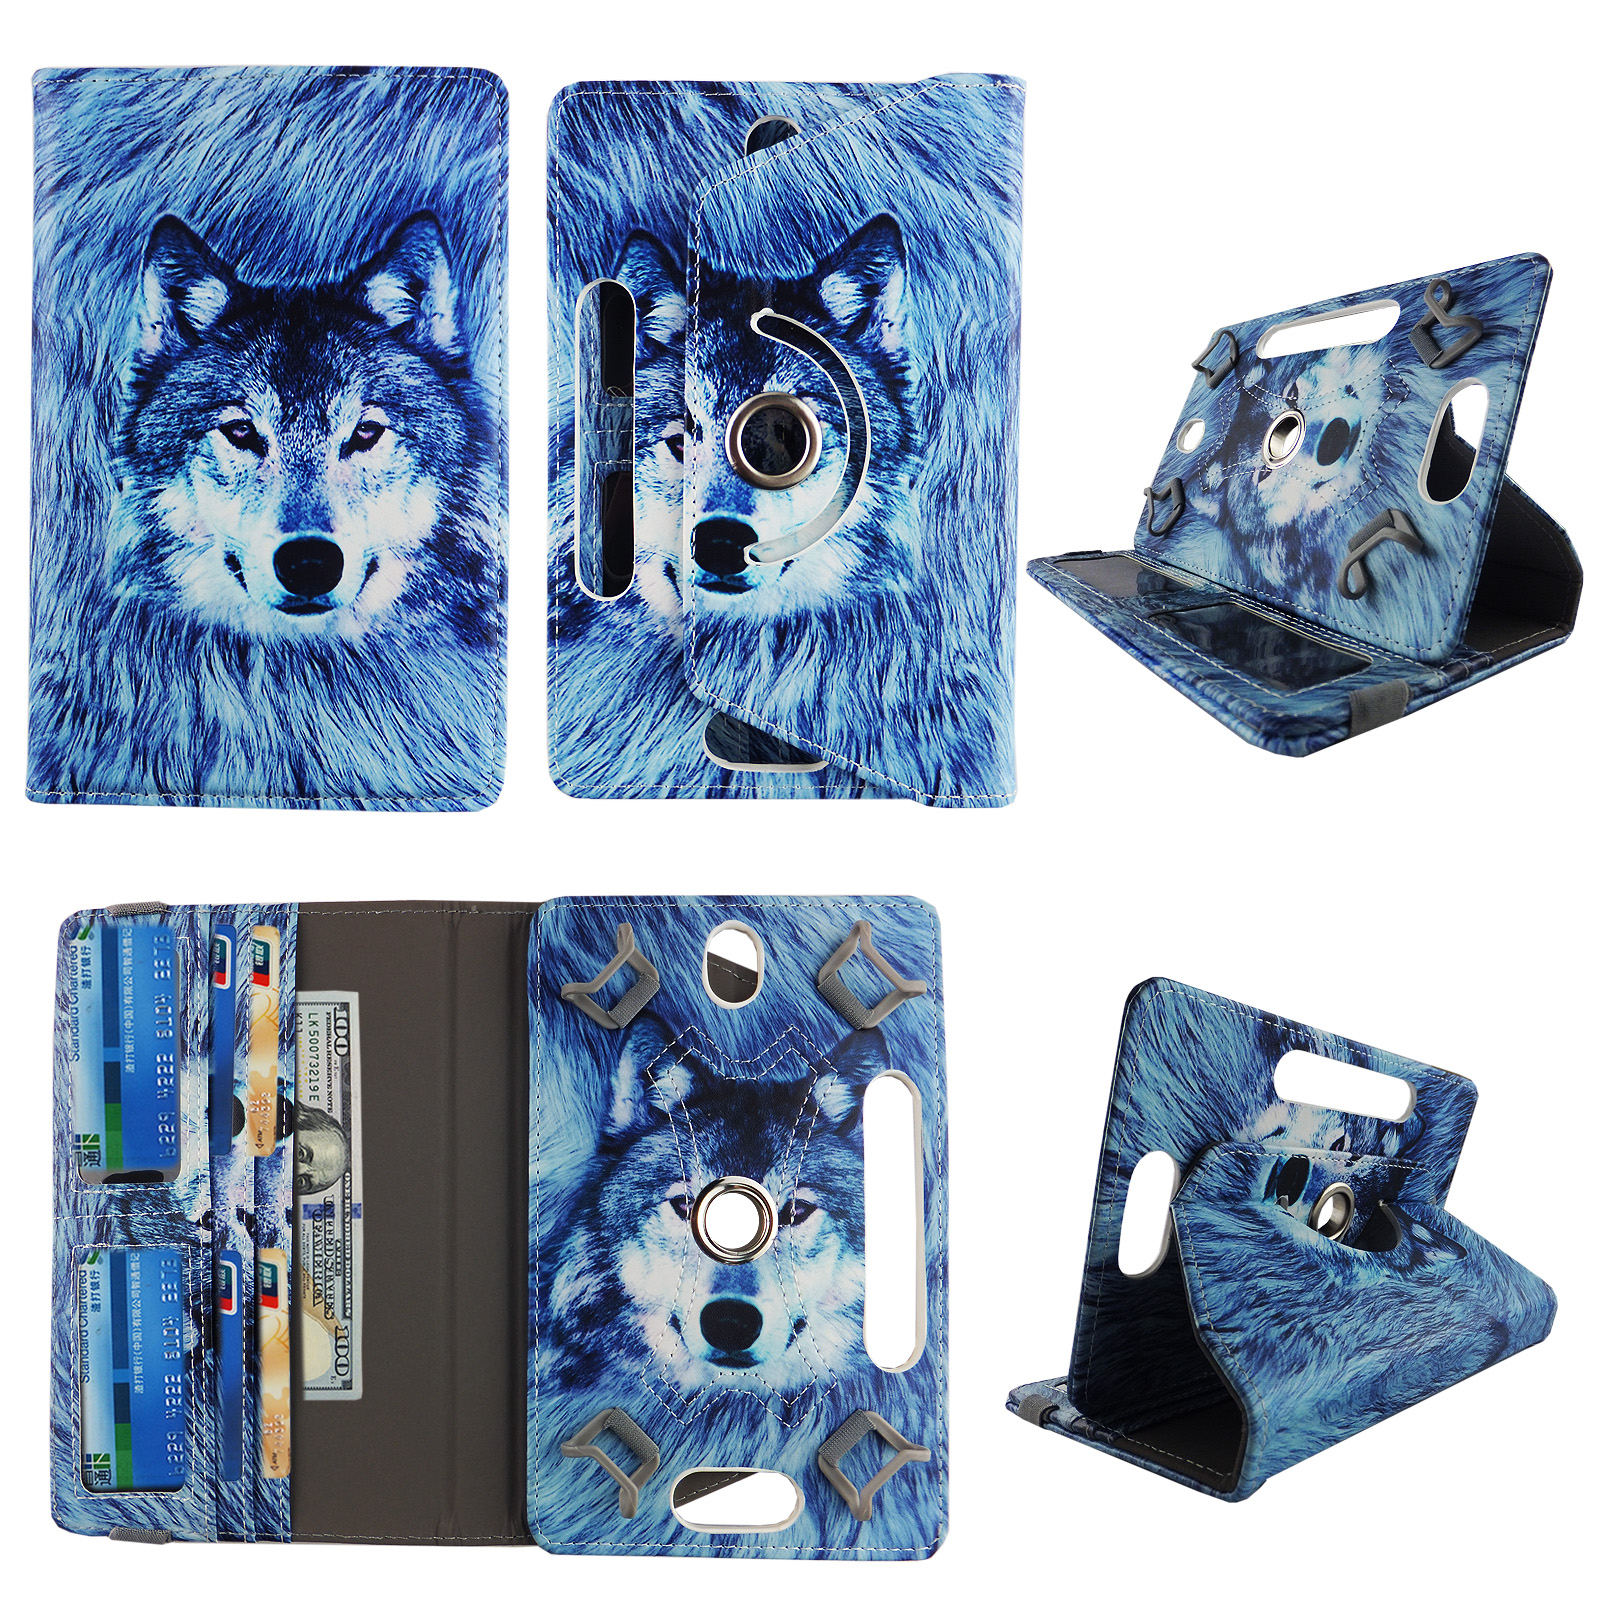 "Snow Wolf tablet case 10 inch for RCA Pro 10"" 10 inch android tablet cases 360 rotating slim folio stand protector pu leather cover travel e-reader cash slots"